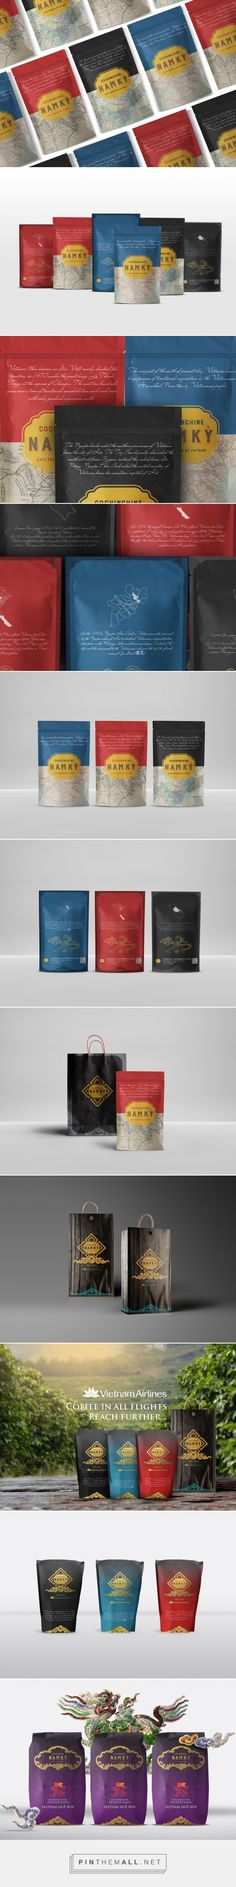 Nam Kỳ Roastery Coffee Packaging Design Concept by Gongvo Creative (Vietnam) - http://www.packagingoftheworld.com/2016/05/nam-ky-roastery-concept.html